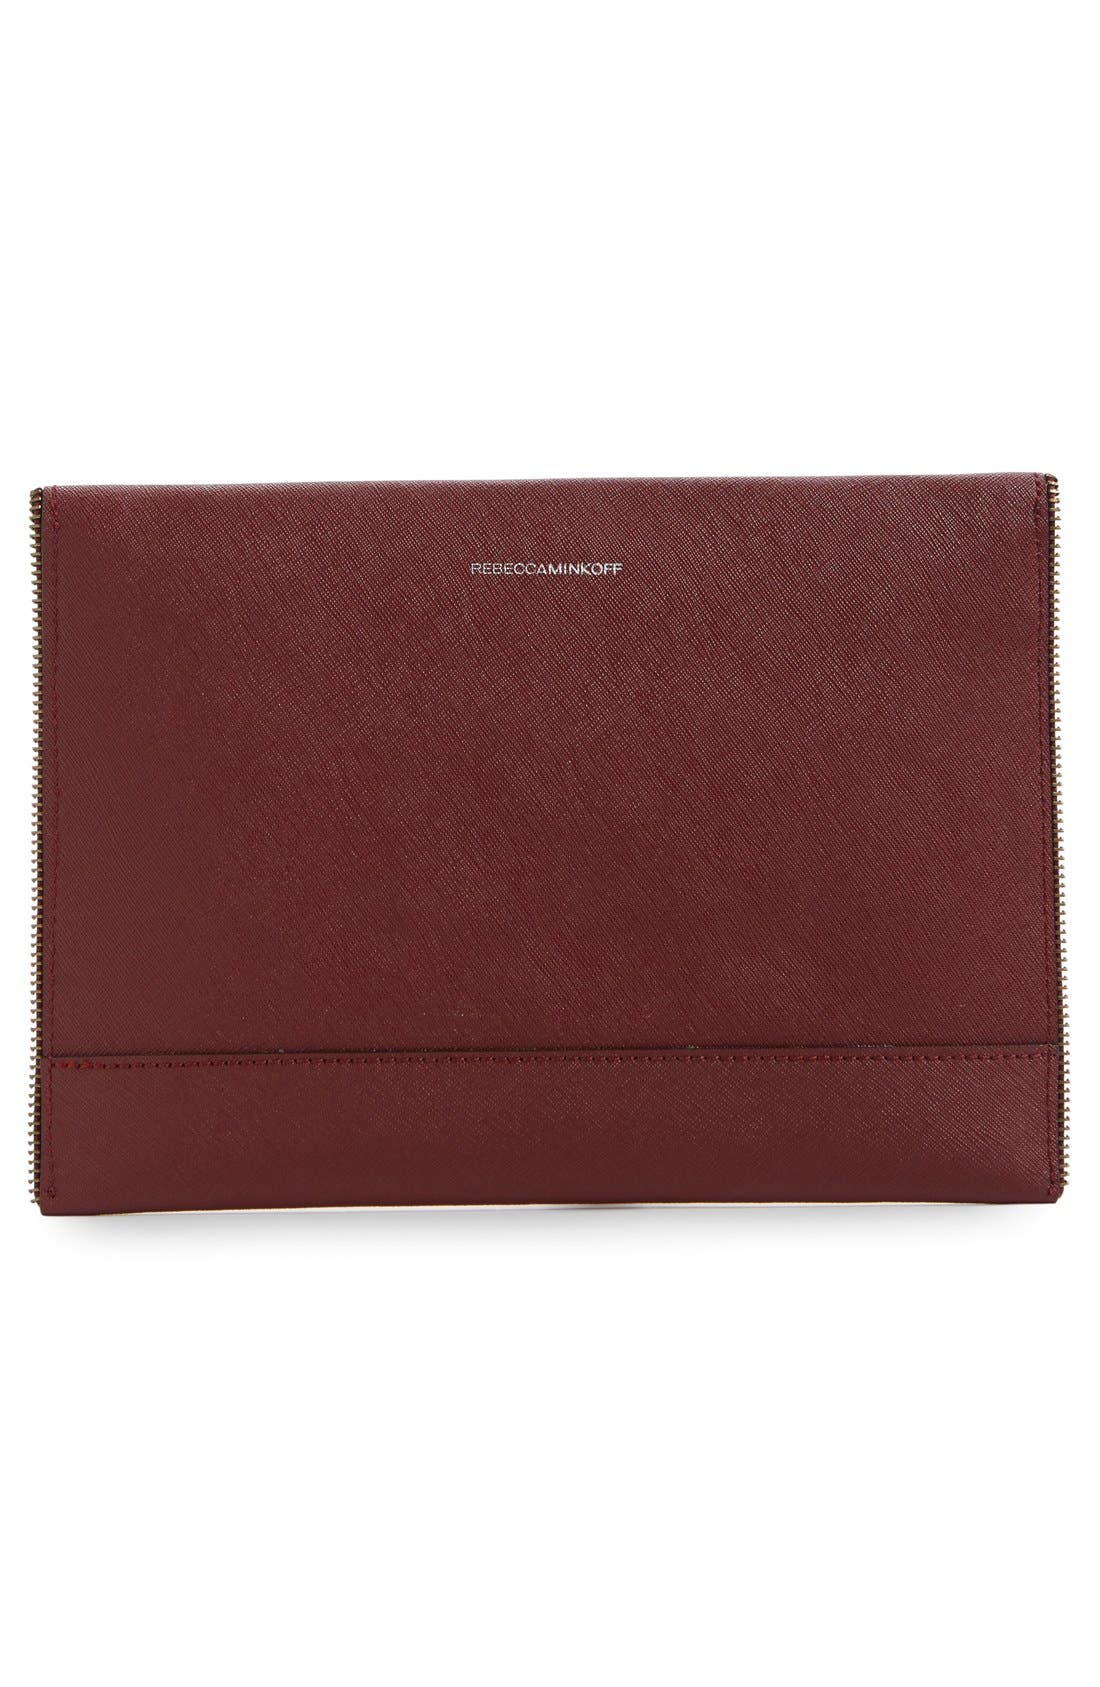 ,                             Leo Envelope Clutch,                             Alternate thumbnail 317, color,                             930